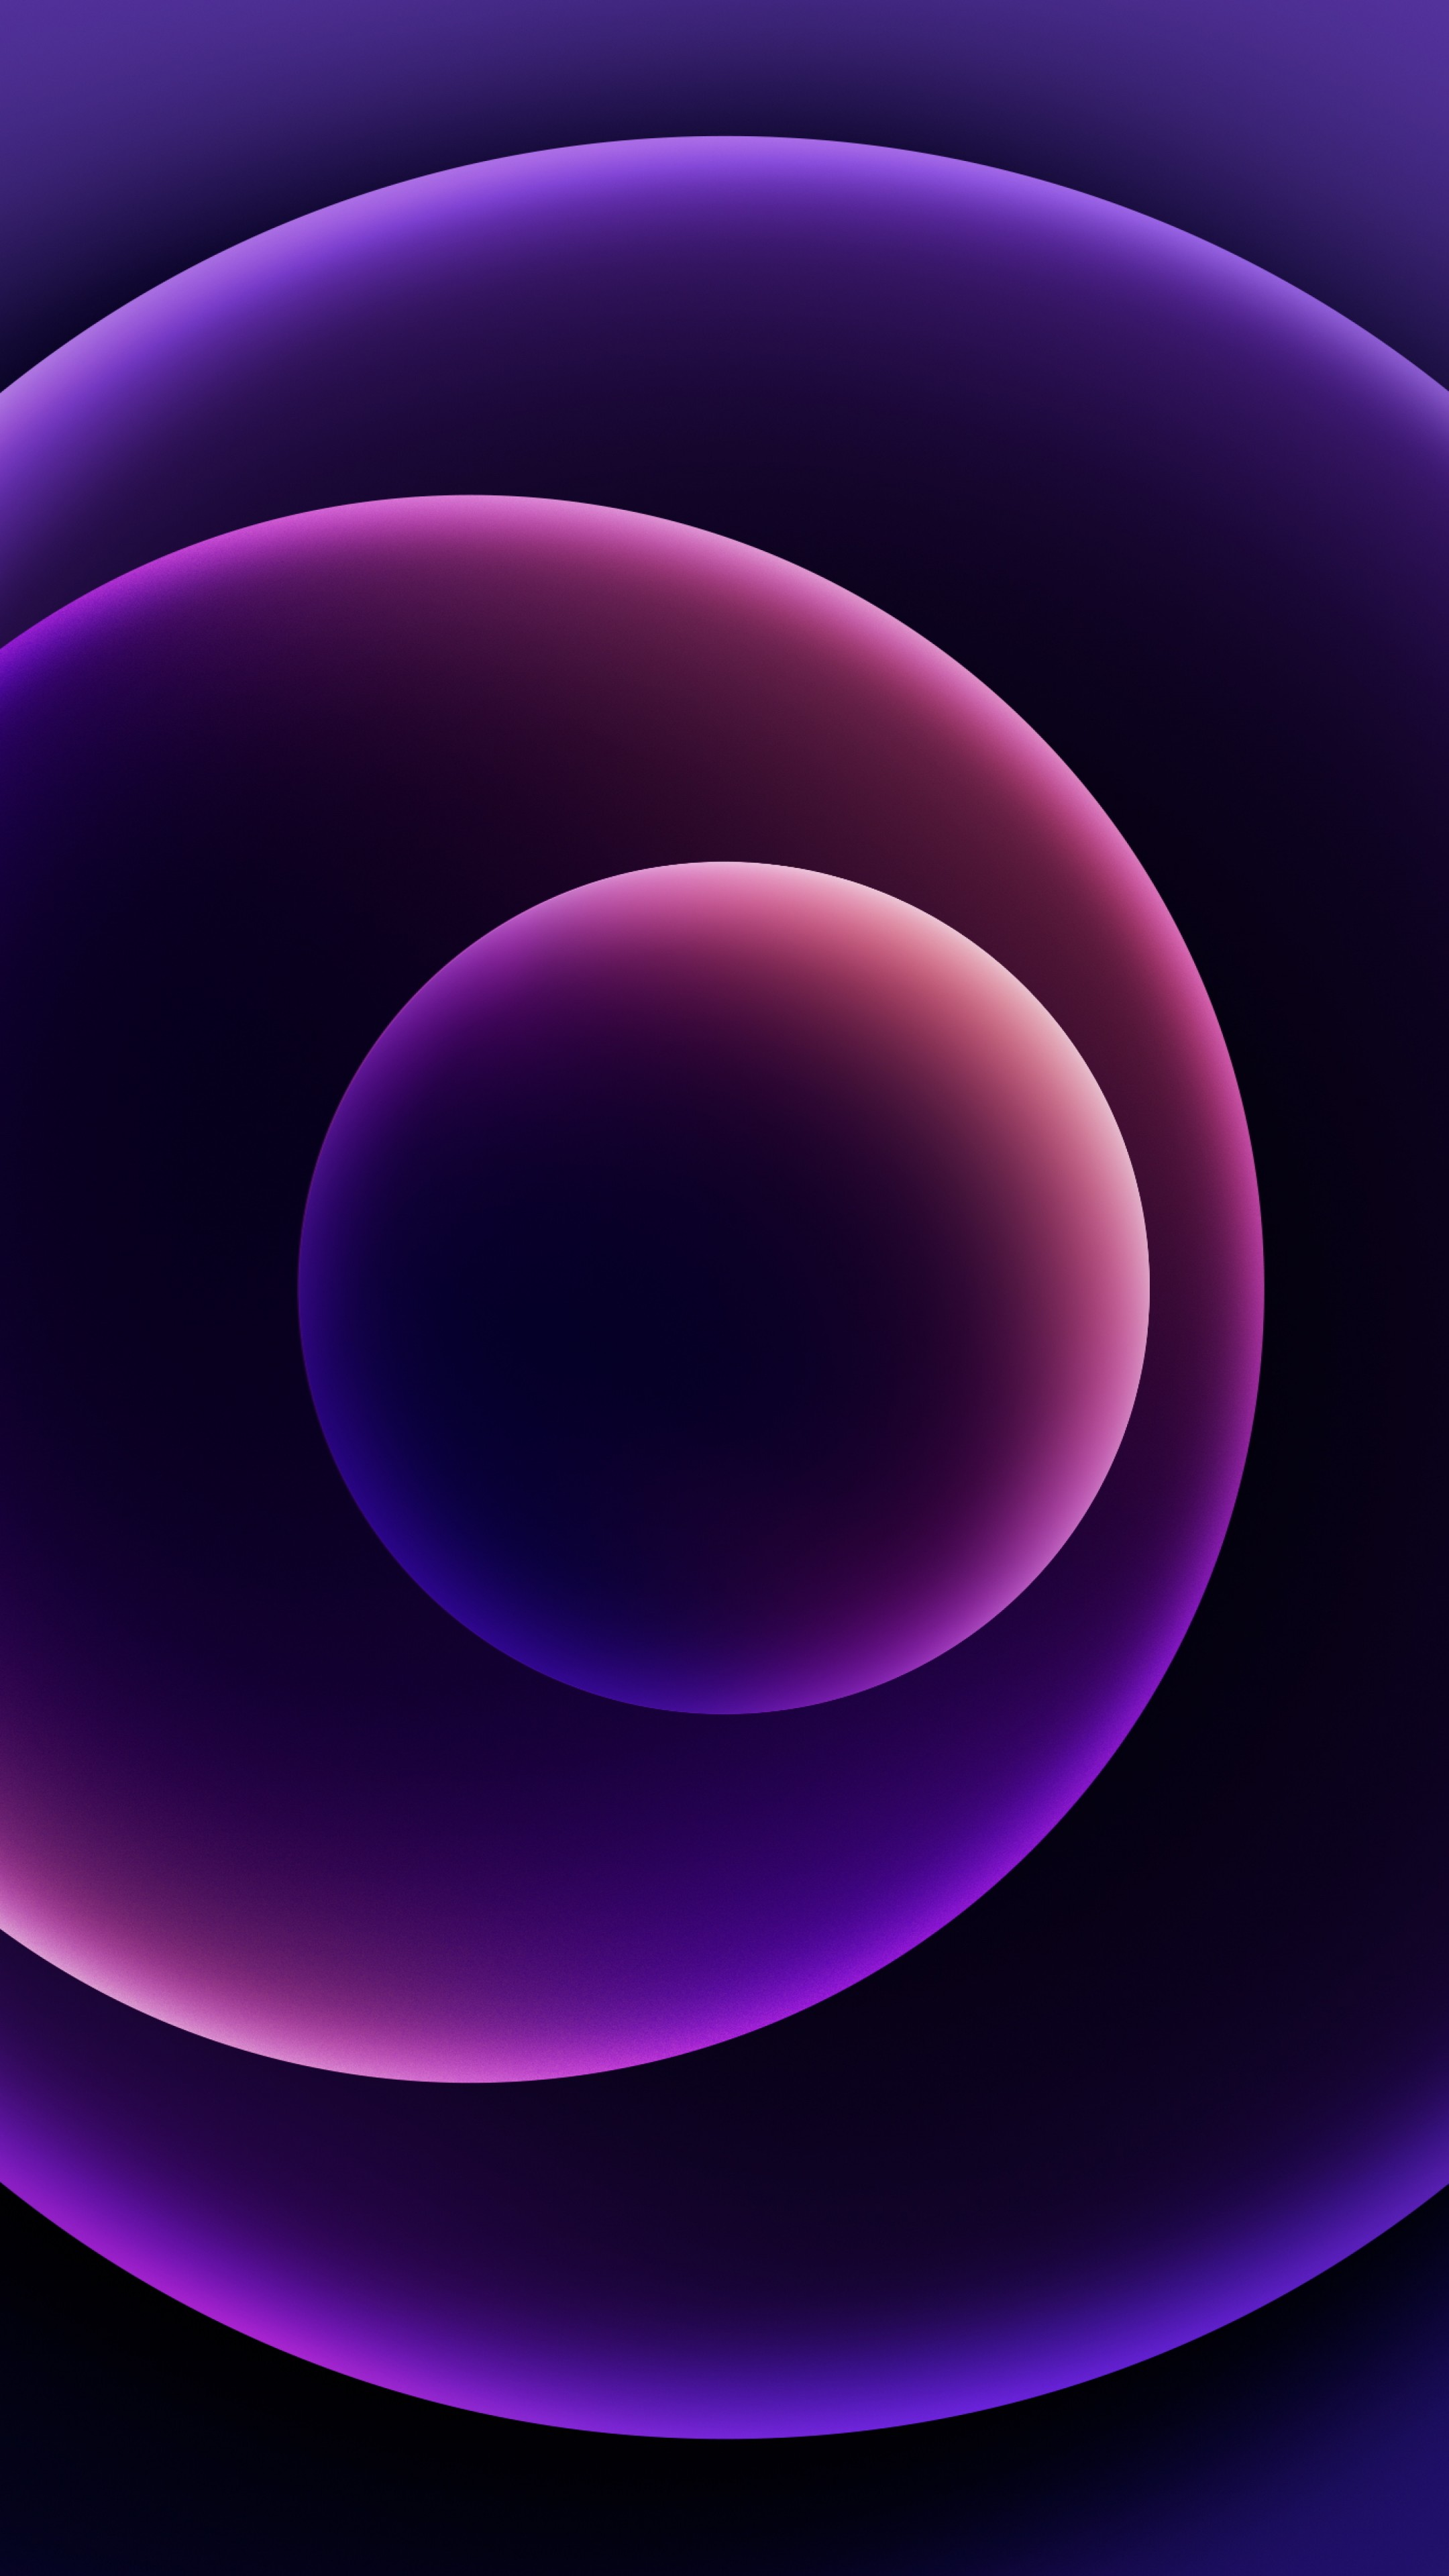 Wallpaper iPhone 12, purple, abstract, Apple April 2021 ...